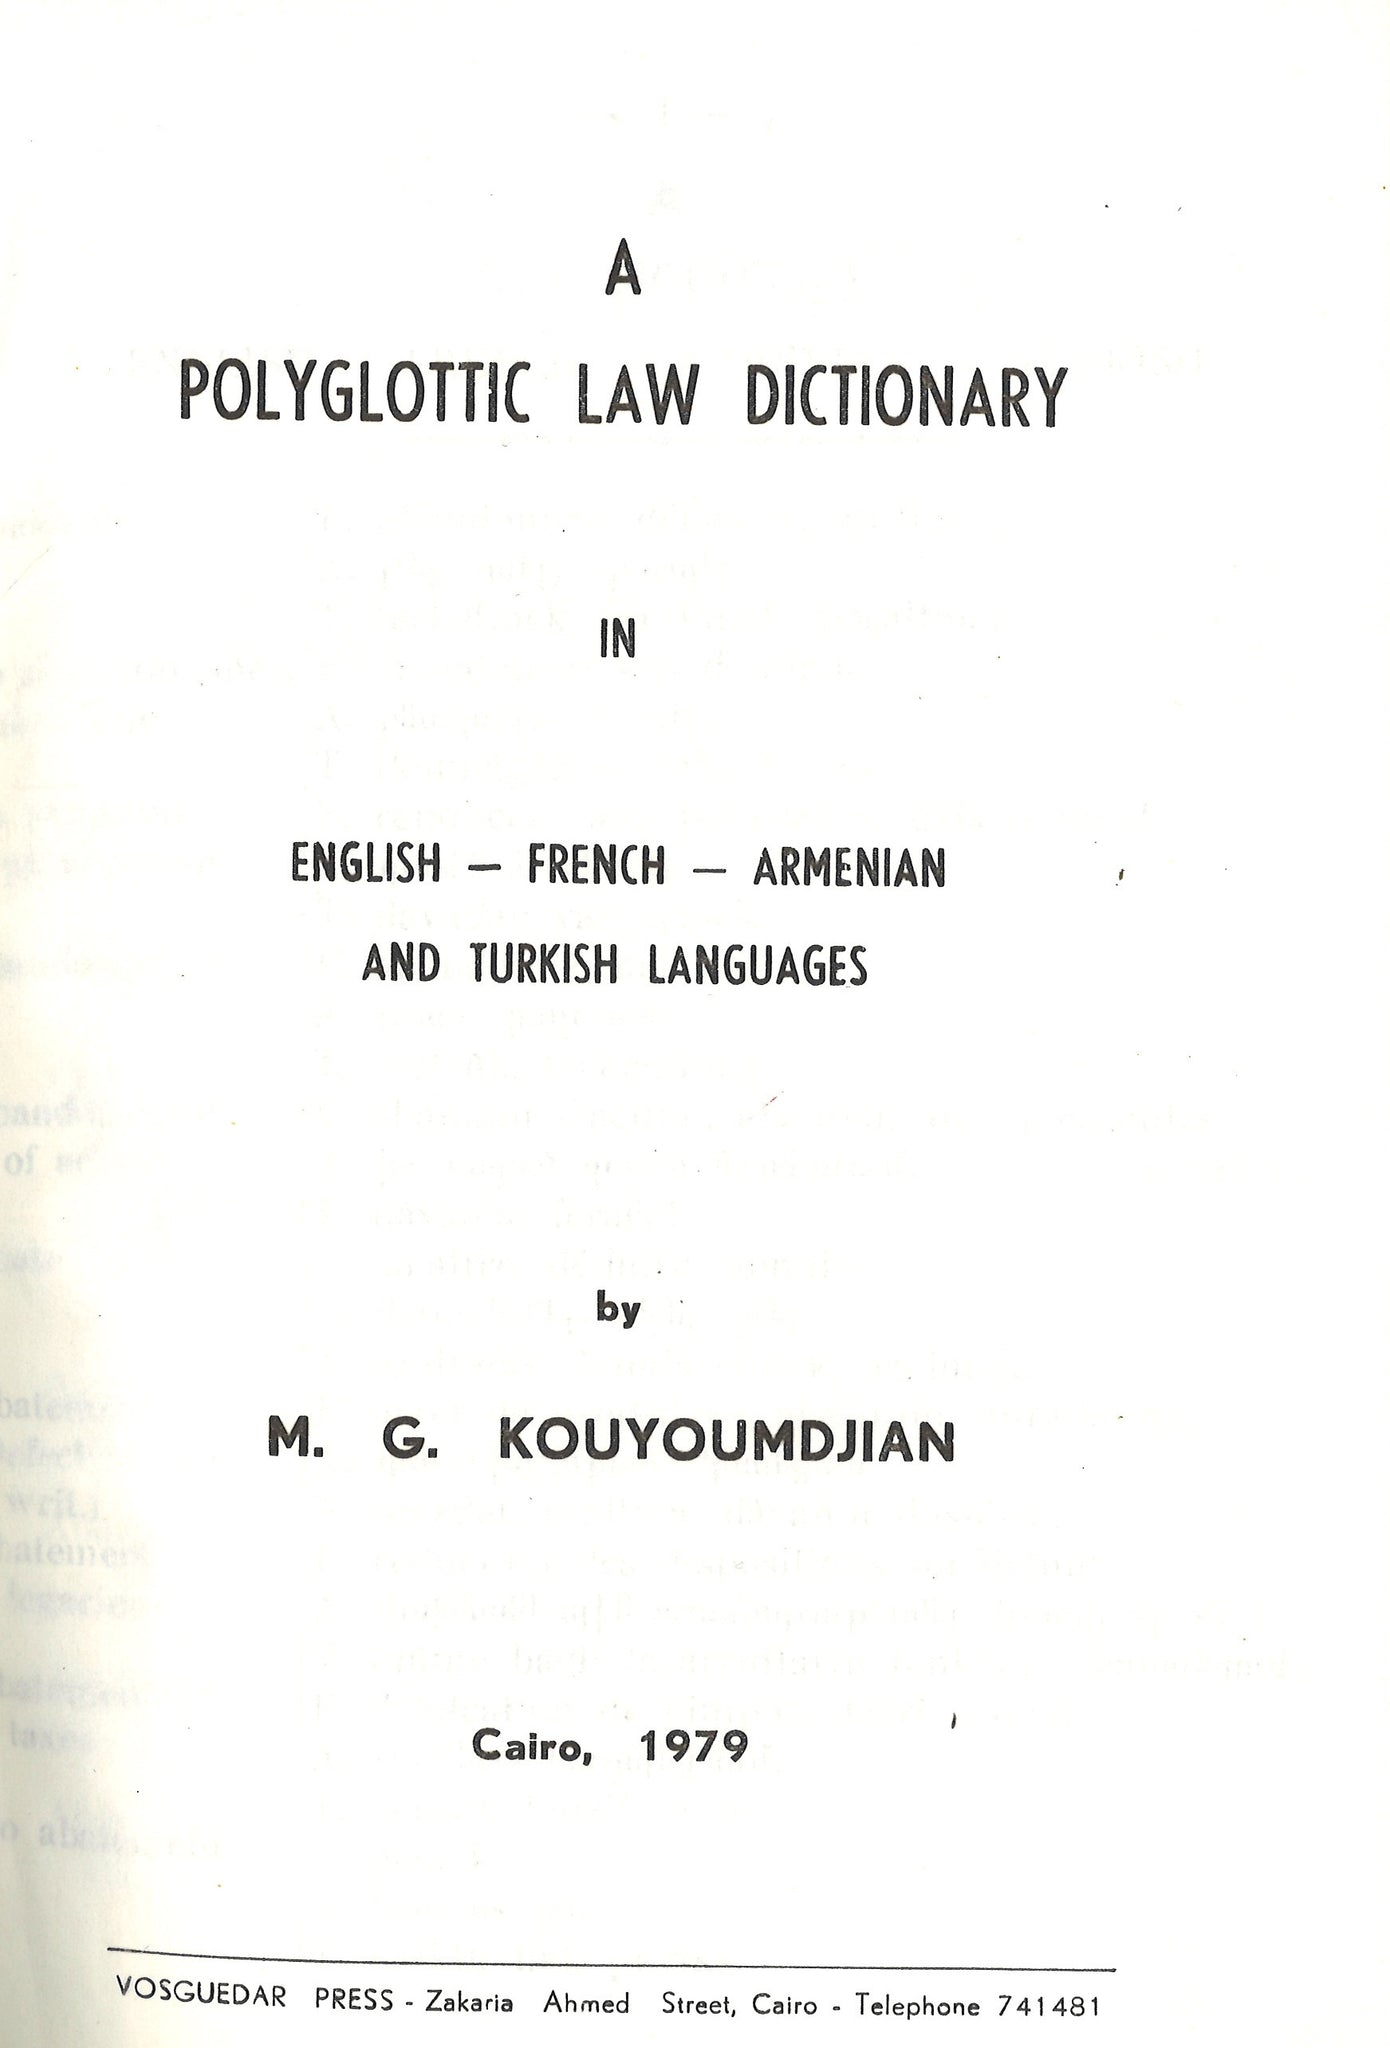 POLYGLOTIC LAW DICTIONARY: Armenian, English, French, Turkish